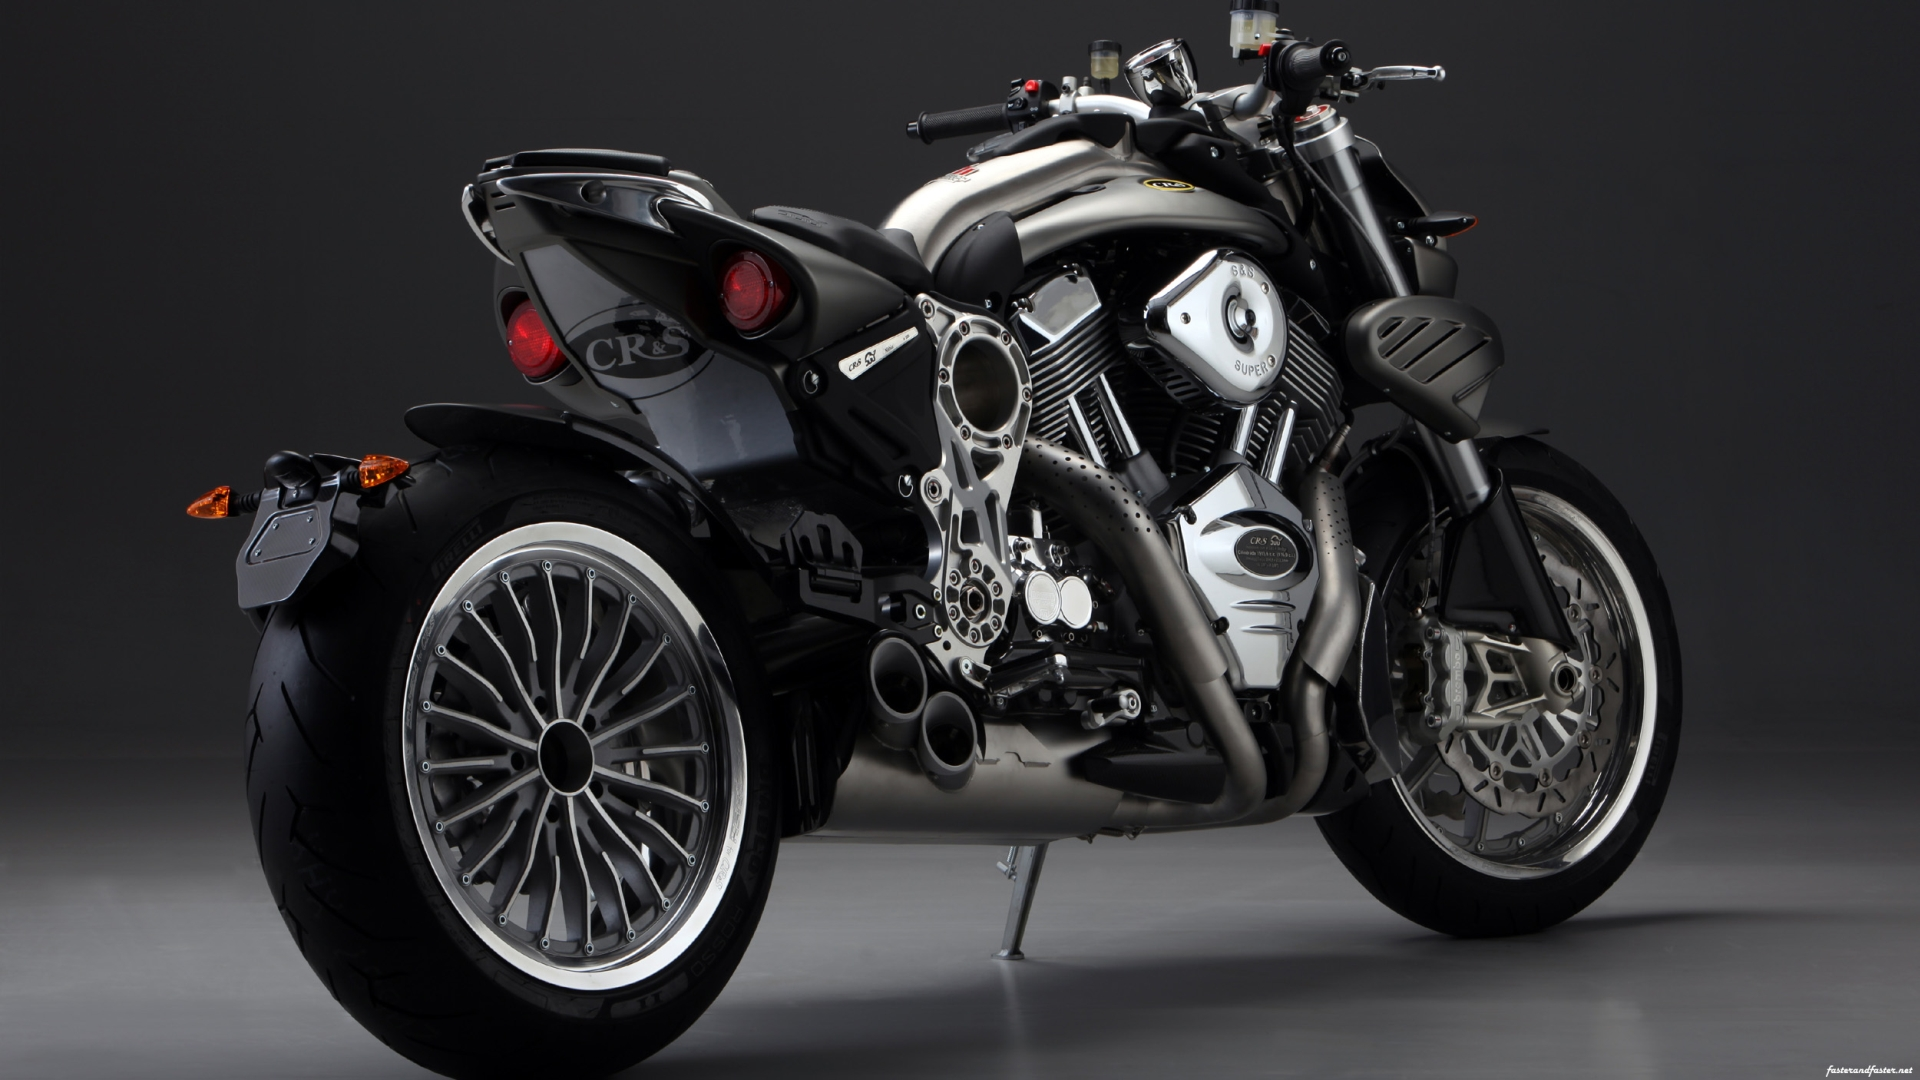 Wallpaper Hd Ducati Cr Amp S Duu Motorcycles Are Awesome And Expensive